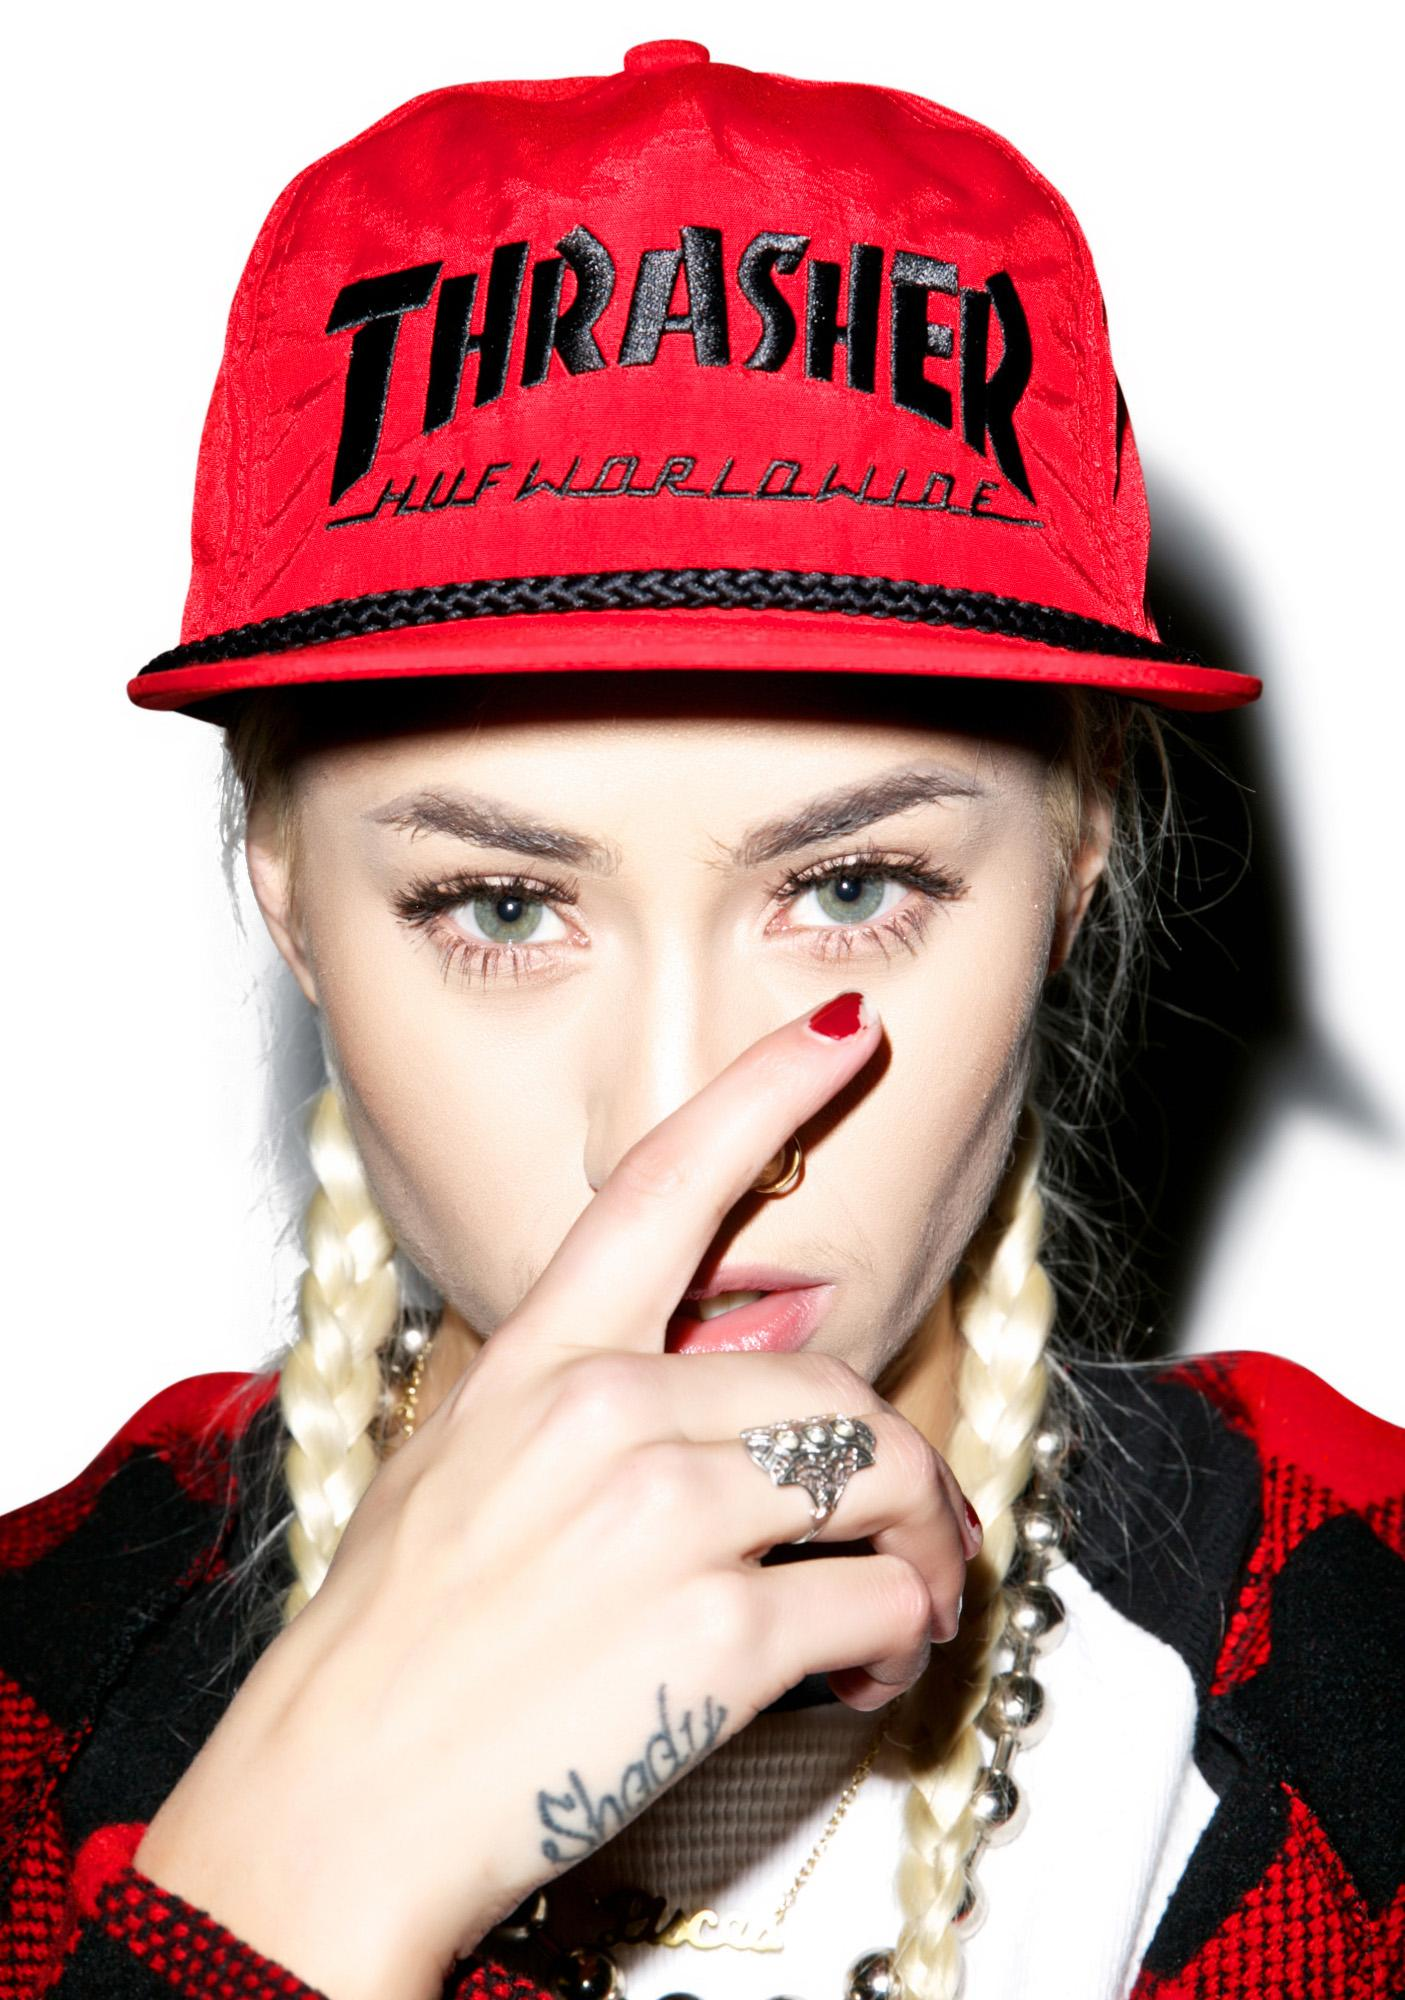 HUF X Thrasher Collab Logo Hat